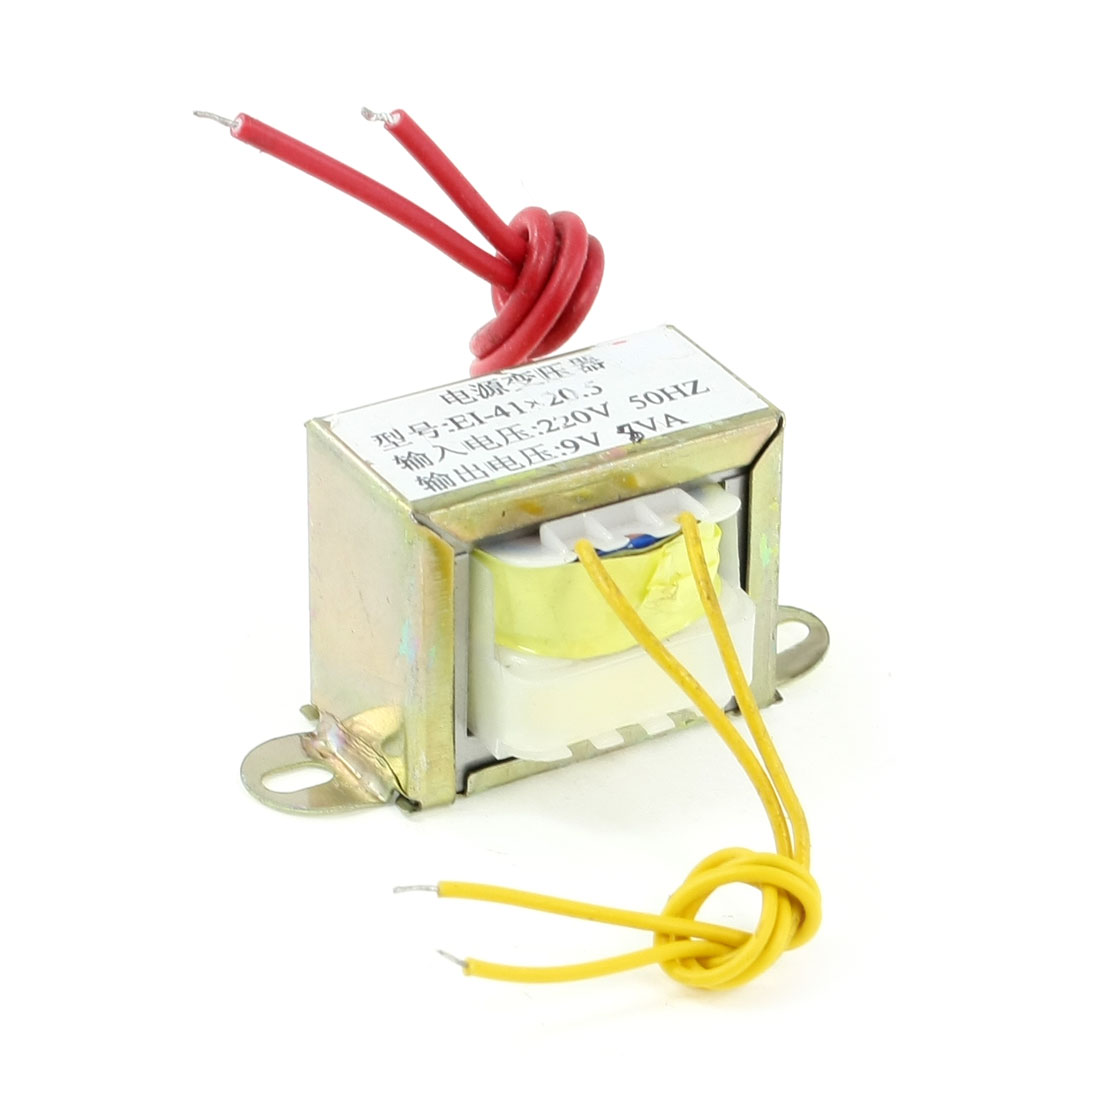 EI Core 220V 50Hz Input AC 9V 8VA Output EI-41x20.5 Power Transformer